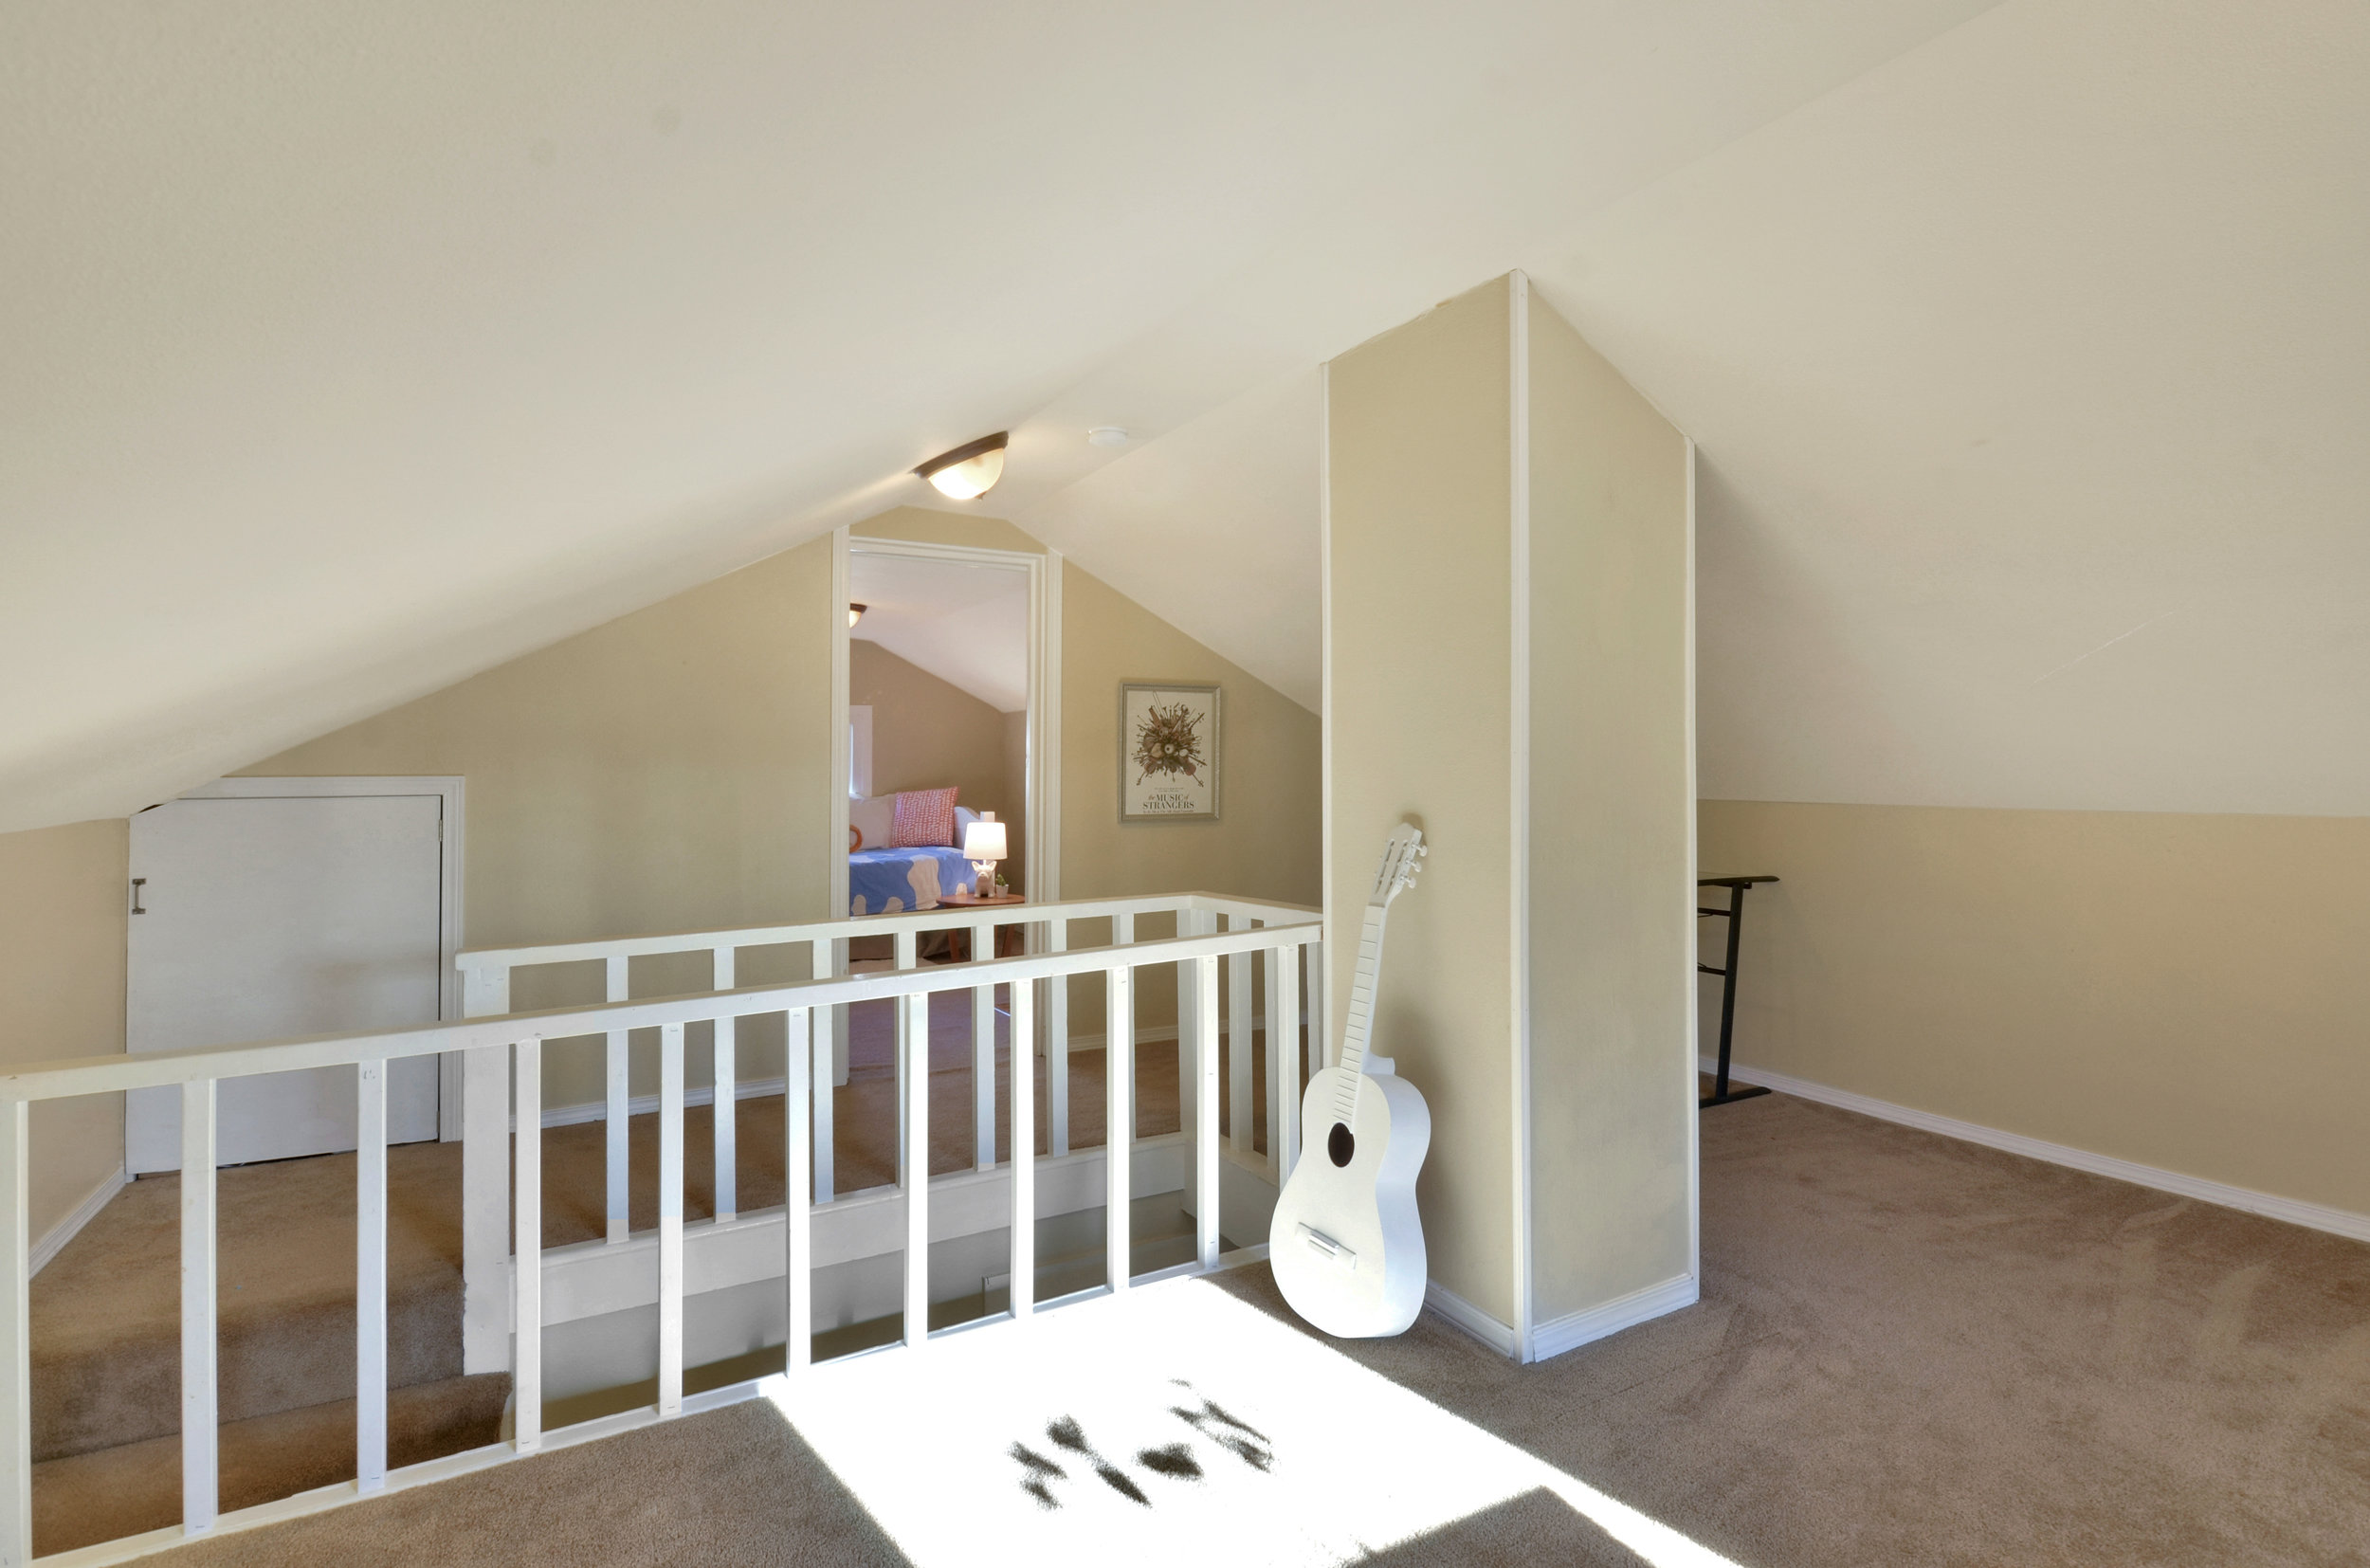 In the freshly painted second floor find a landing leading to one bedroom, with a flexible living space on the other side. Play room, music room, or even a spot to host the occasional guest.